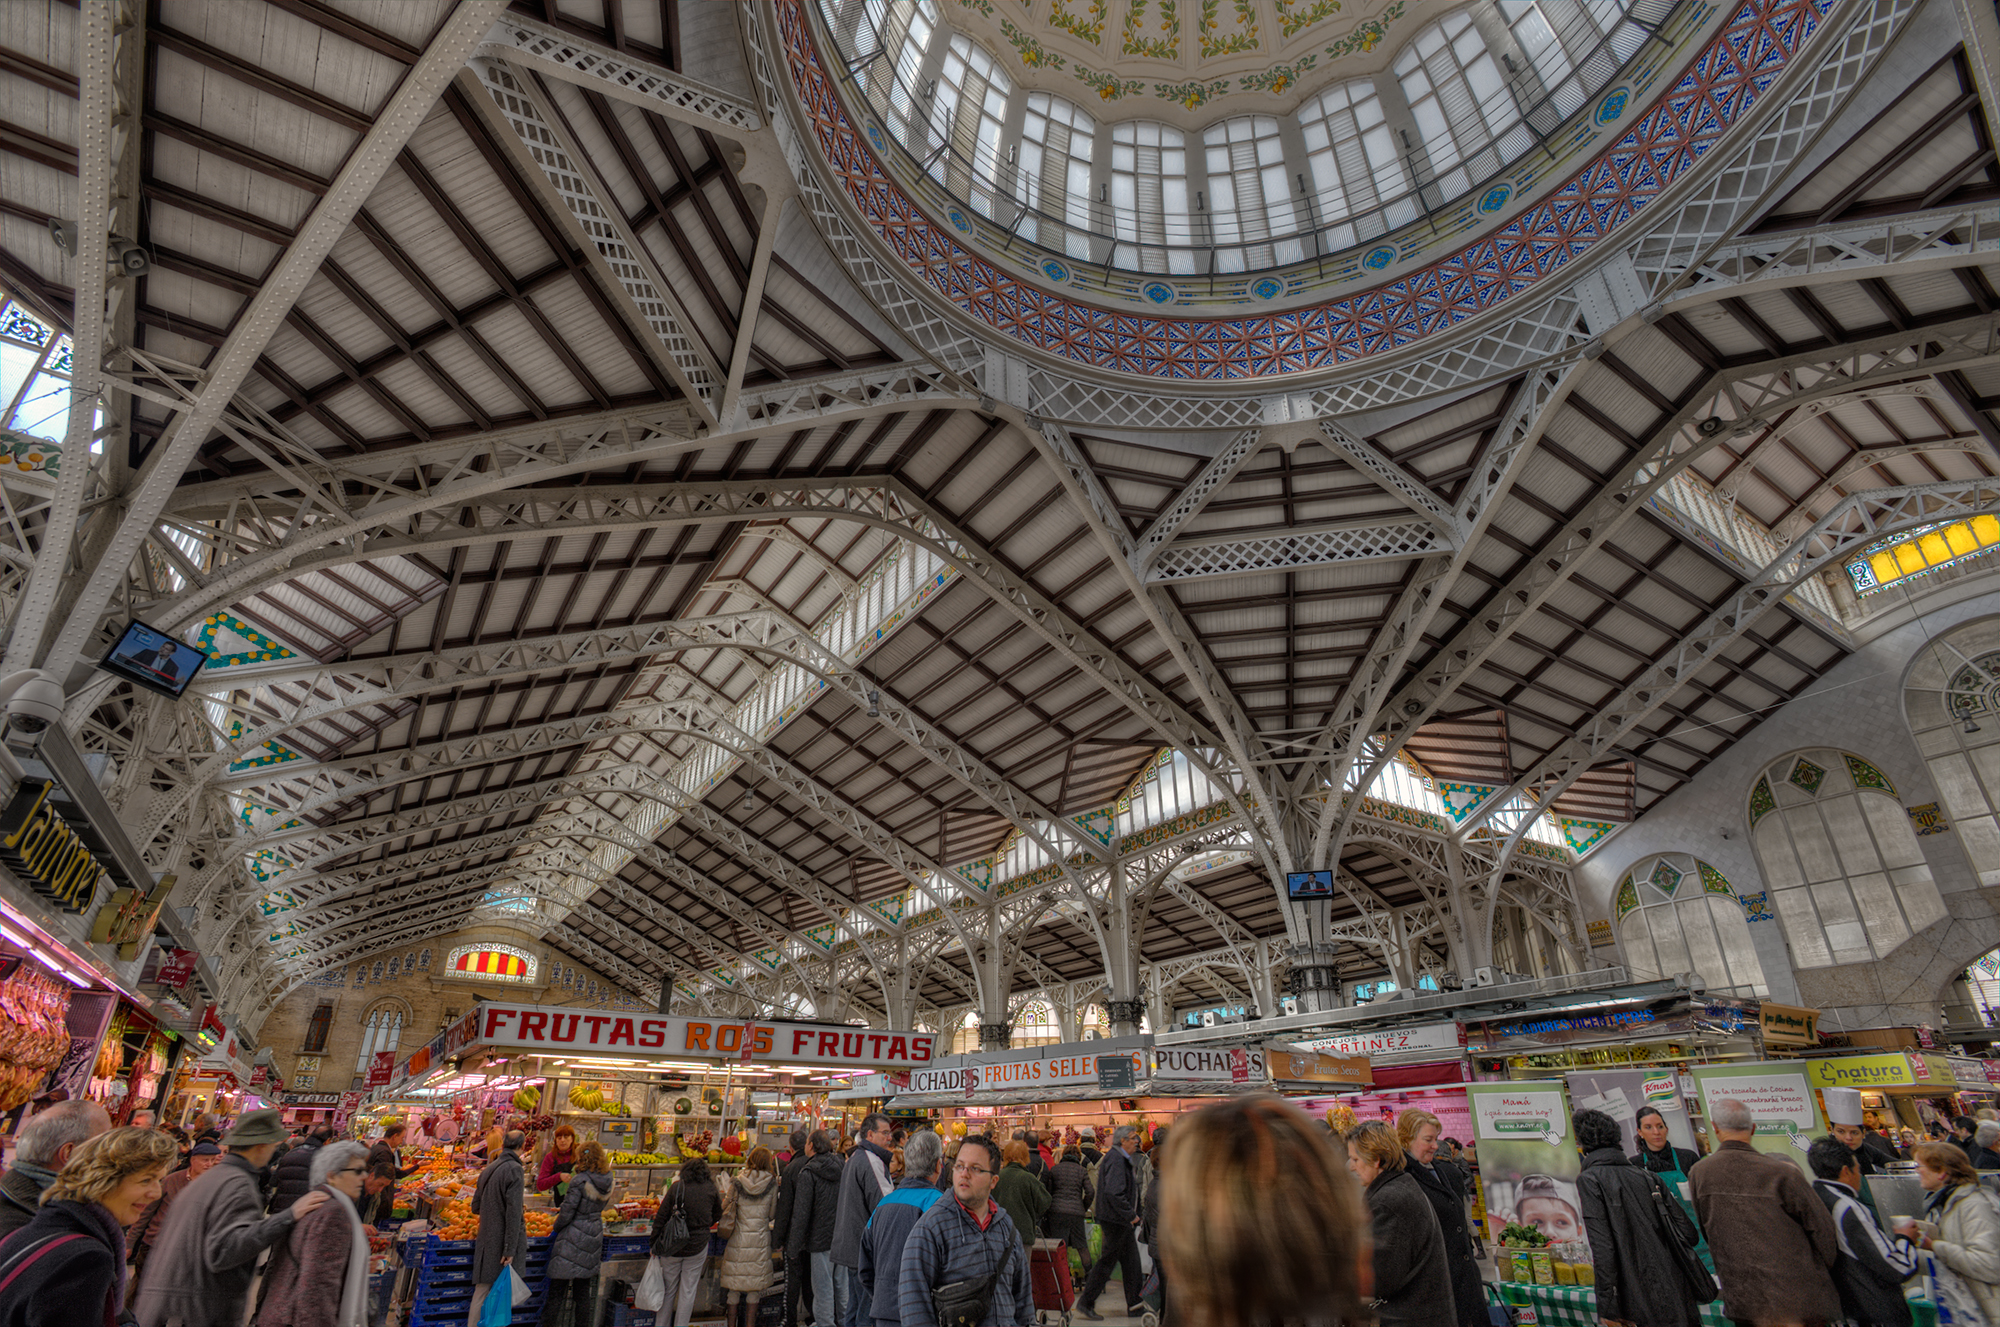 Mercado Central - Public Building in Valencia - Thousand Wonders